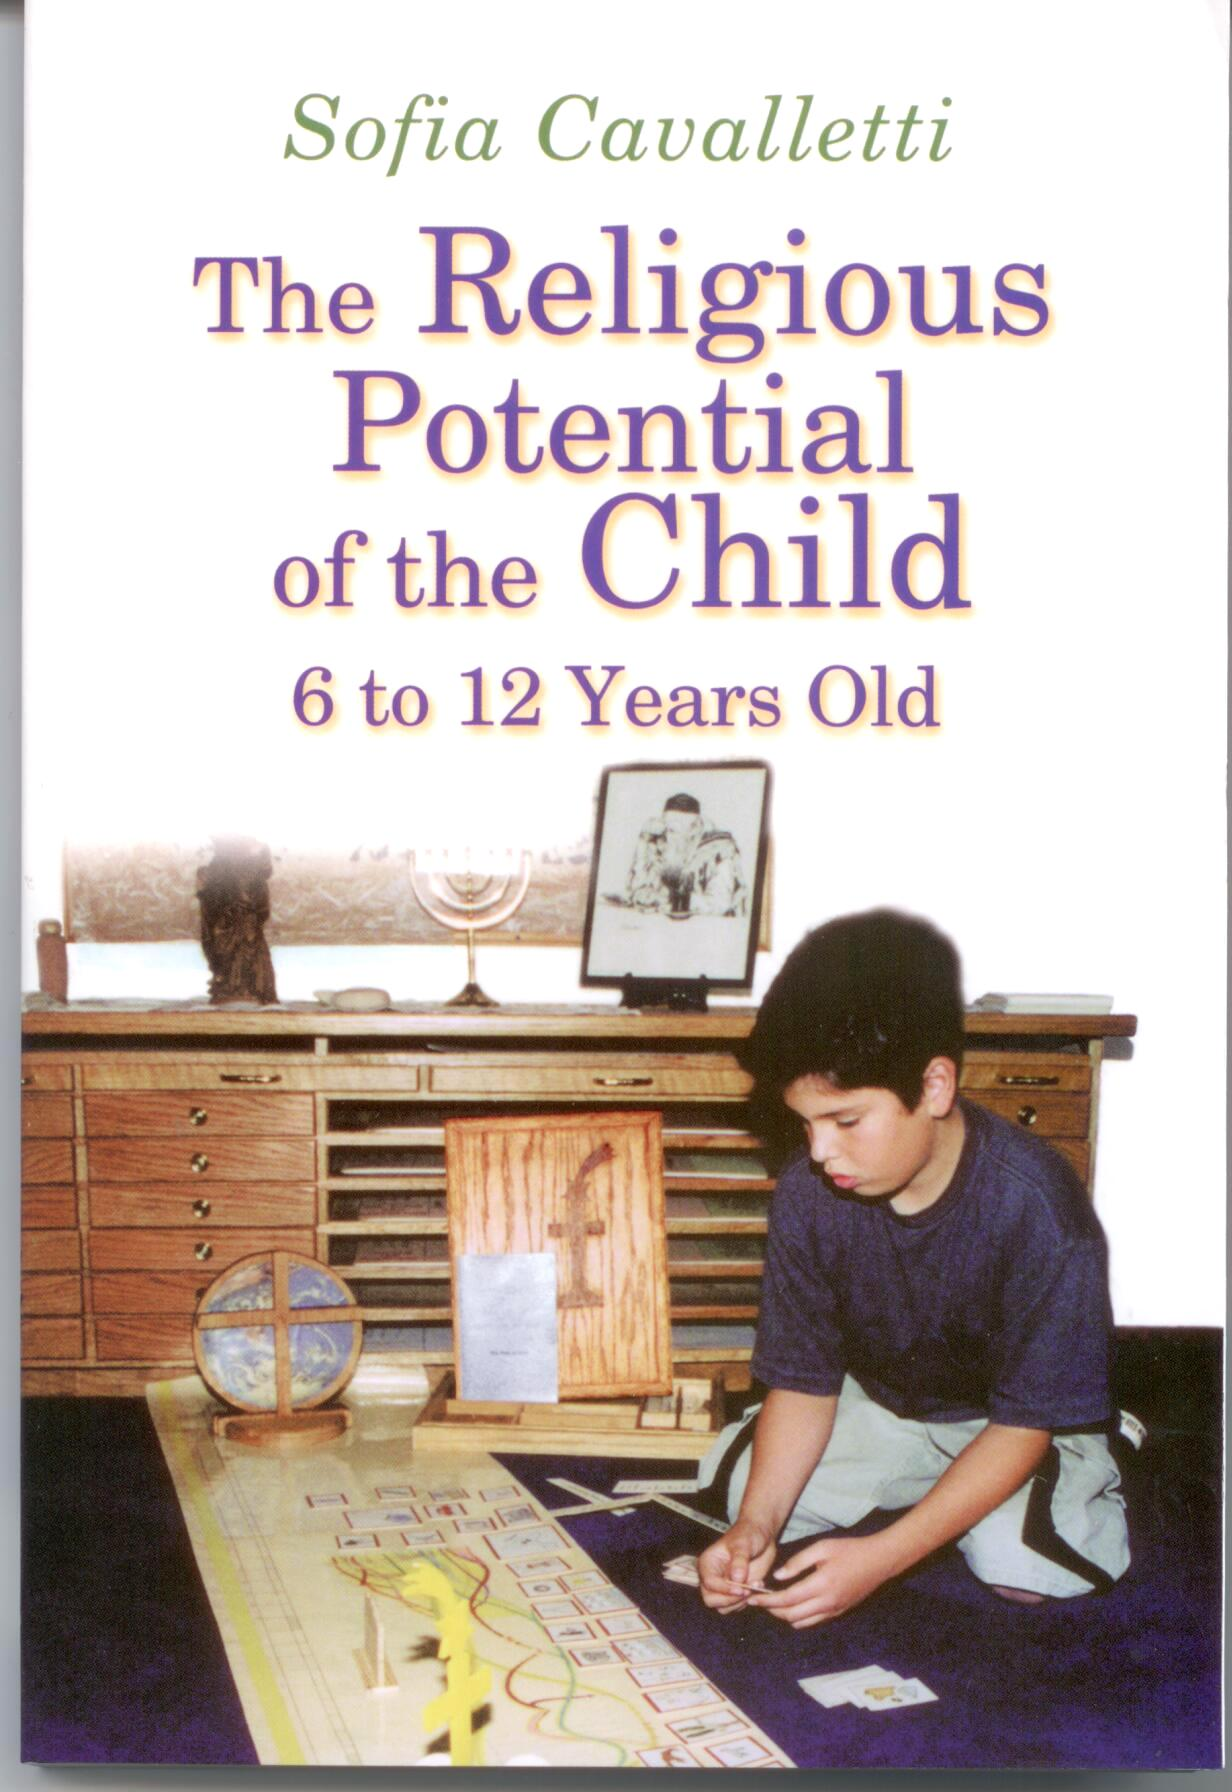 The Religious Potential of the Child 6 To 12 by Sofia Cavalletti